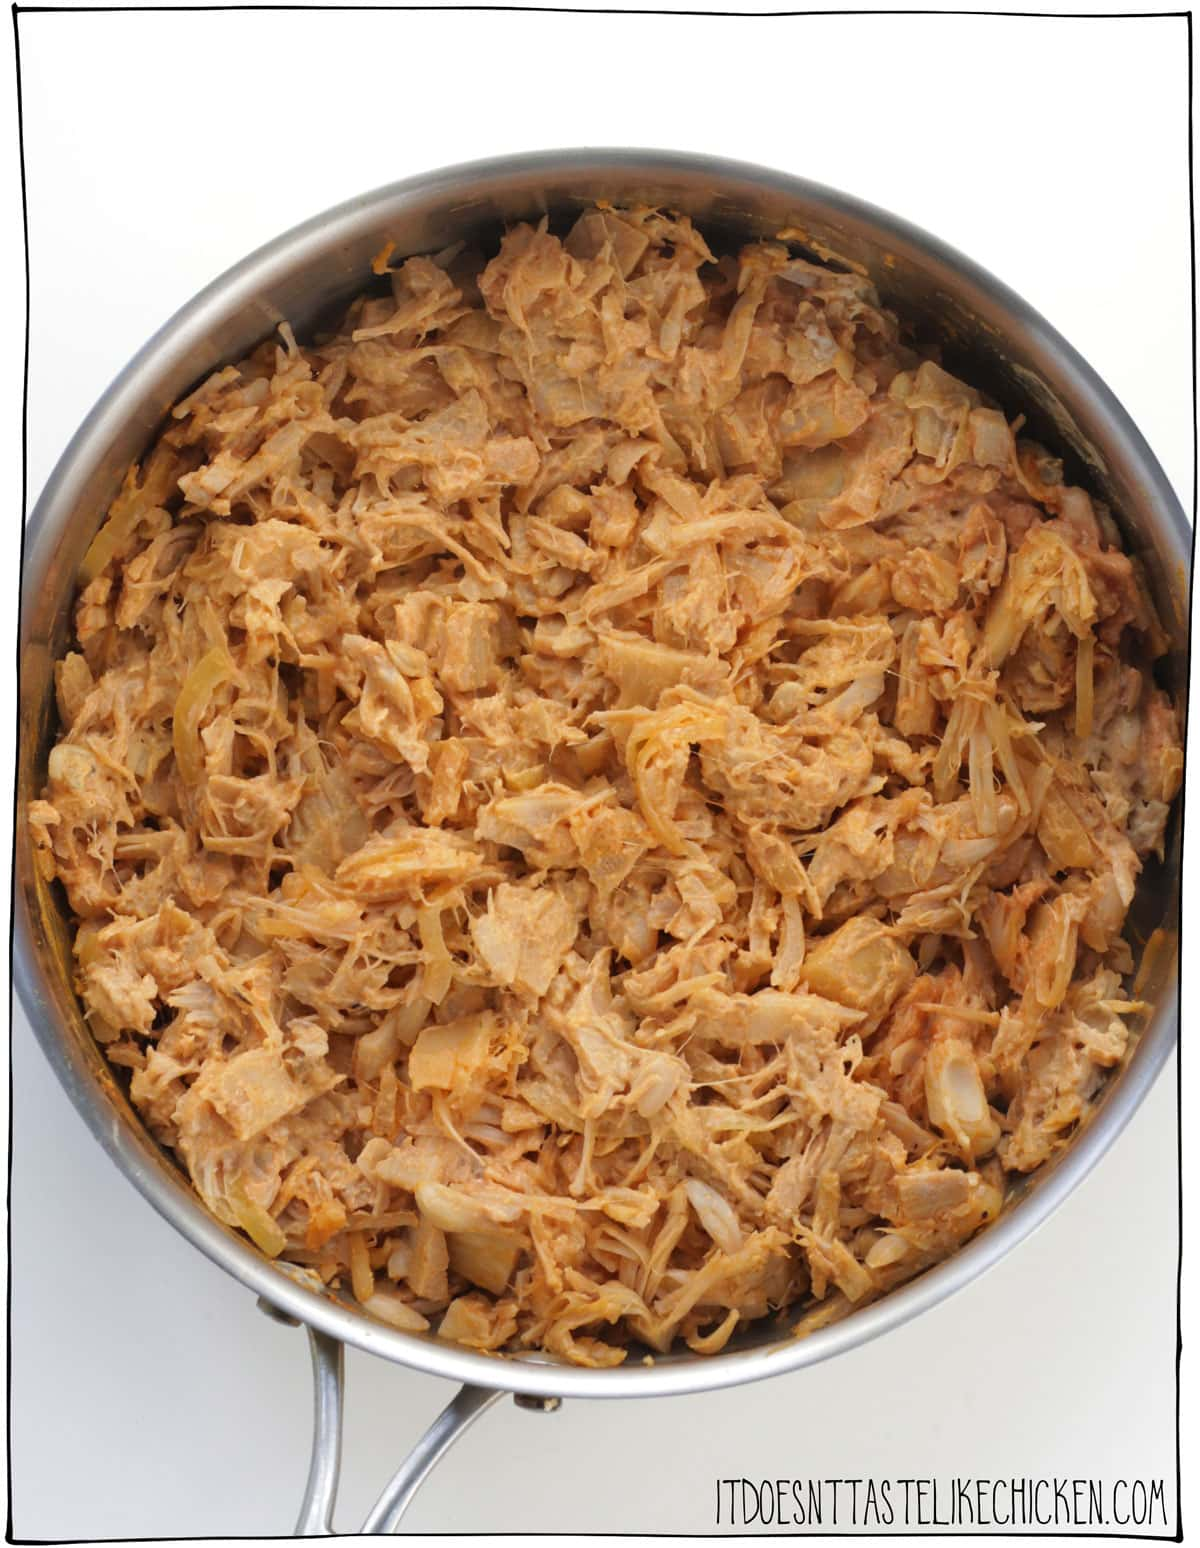 Easy Vegan Buffalo Jackfruit (vegan buffalo chicken)! Just 30 minutes or less to prepare and requires only 8 ingredients. Add this to tacos, pizza, dips, nachos, wraps, sandwiches, quesadillas, baked potatoes, grain bowls. Perfect game day inspired recipe for meal prepping and freezer friendly. #itdoesnttastelikechicken #jackfruit #veganrecipes